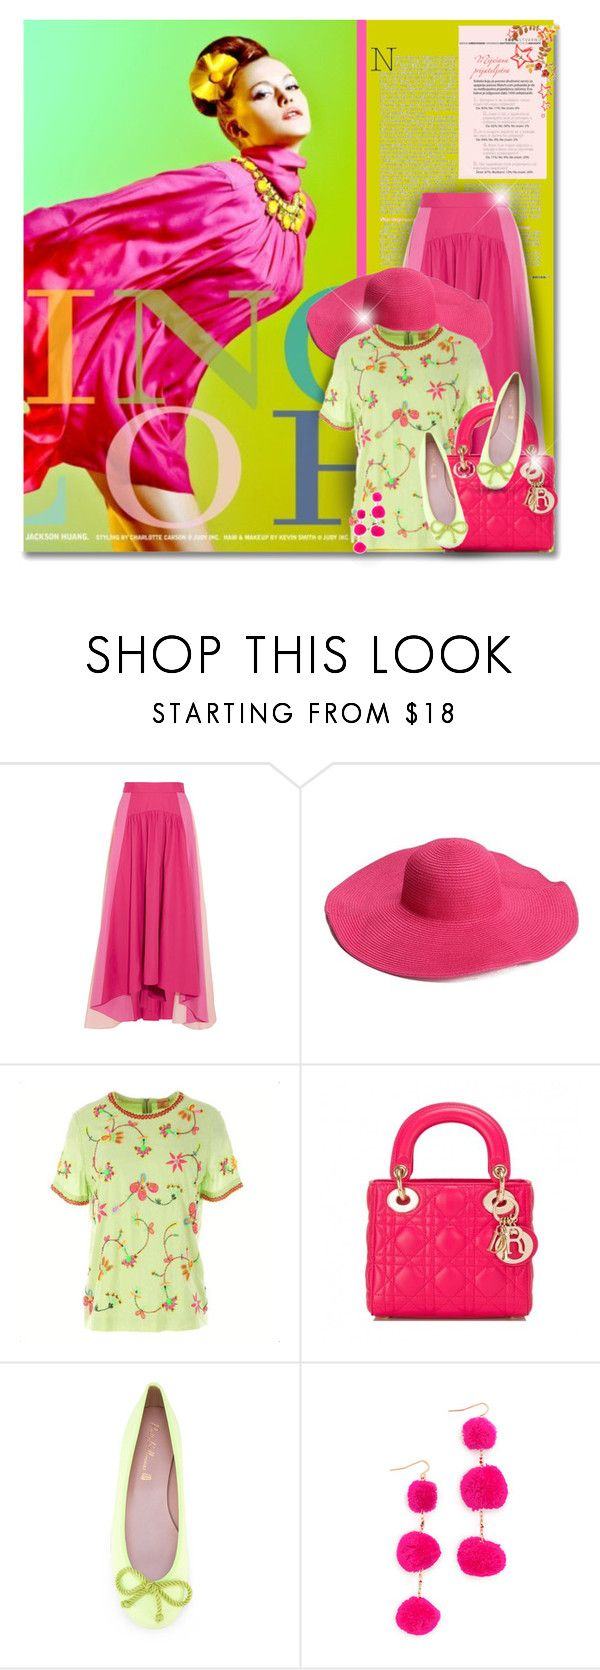 """""""Hot Pink Summer"""" by elona-makavelli ❤ liked on Polyvore featuring Peter Pilotto, Derhy, Christian Dior, Pretty Ballerinas and Vanessa Mooney"""